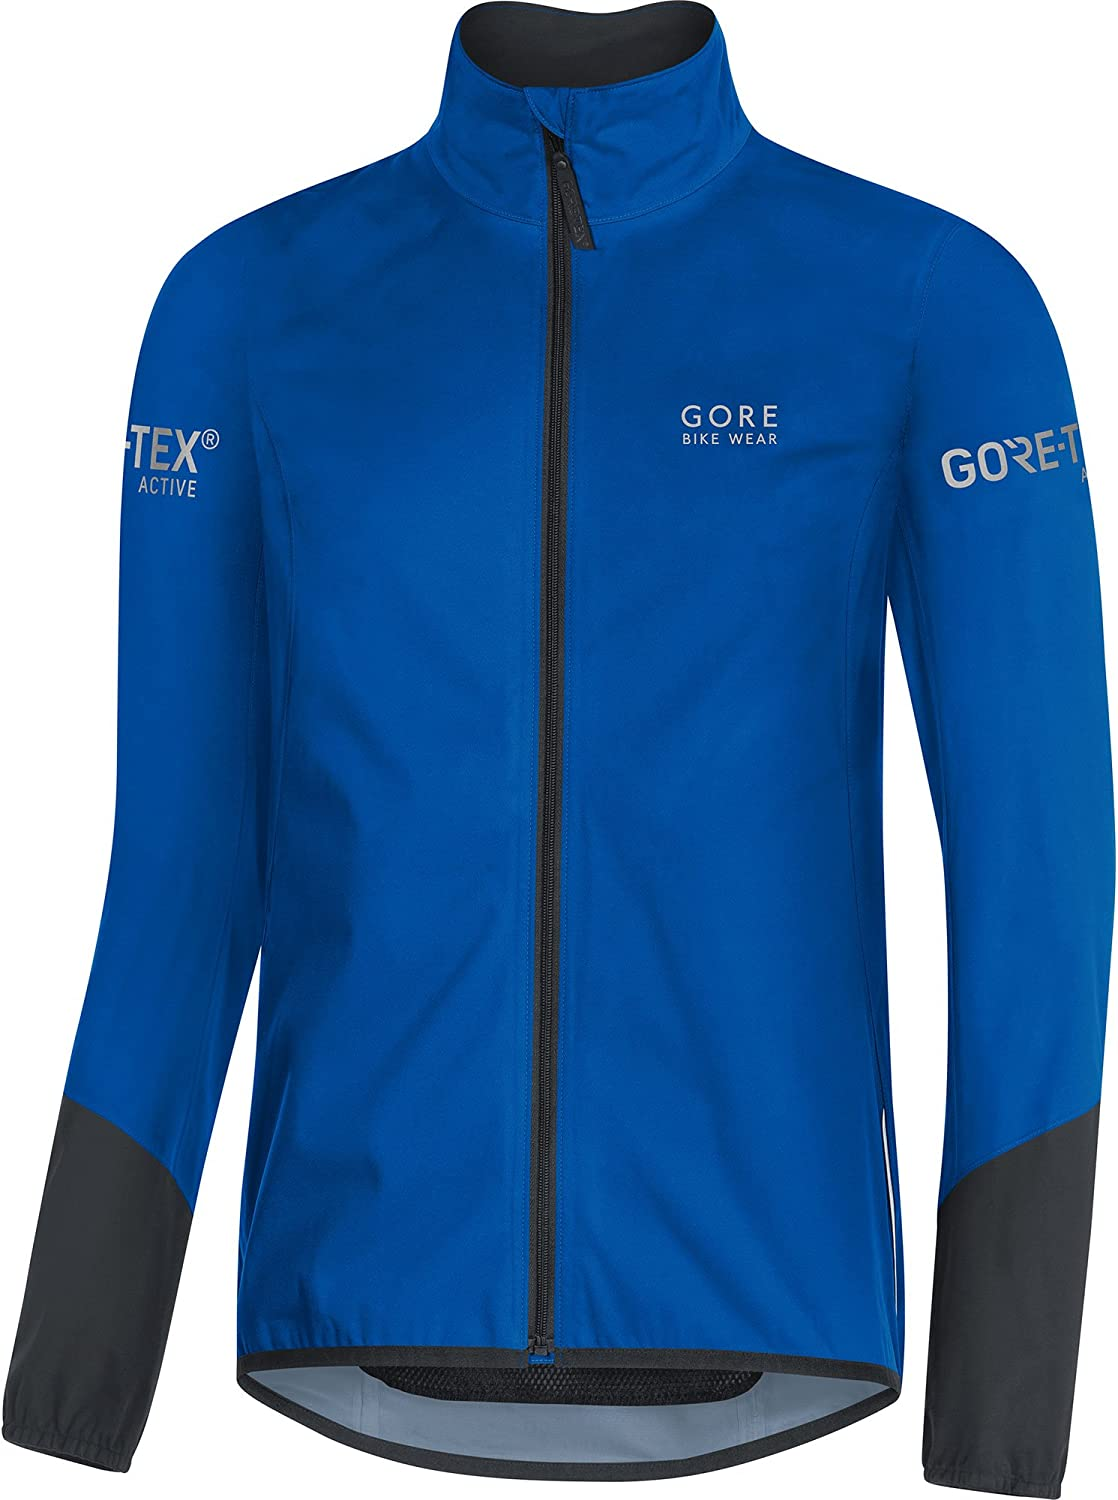 100193 C5 GORE-TEX Active Jacket GORE Wear Mens Waterproof Cycling Jacket